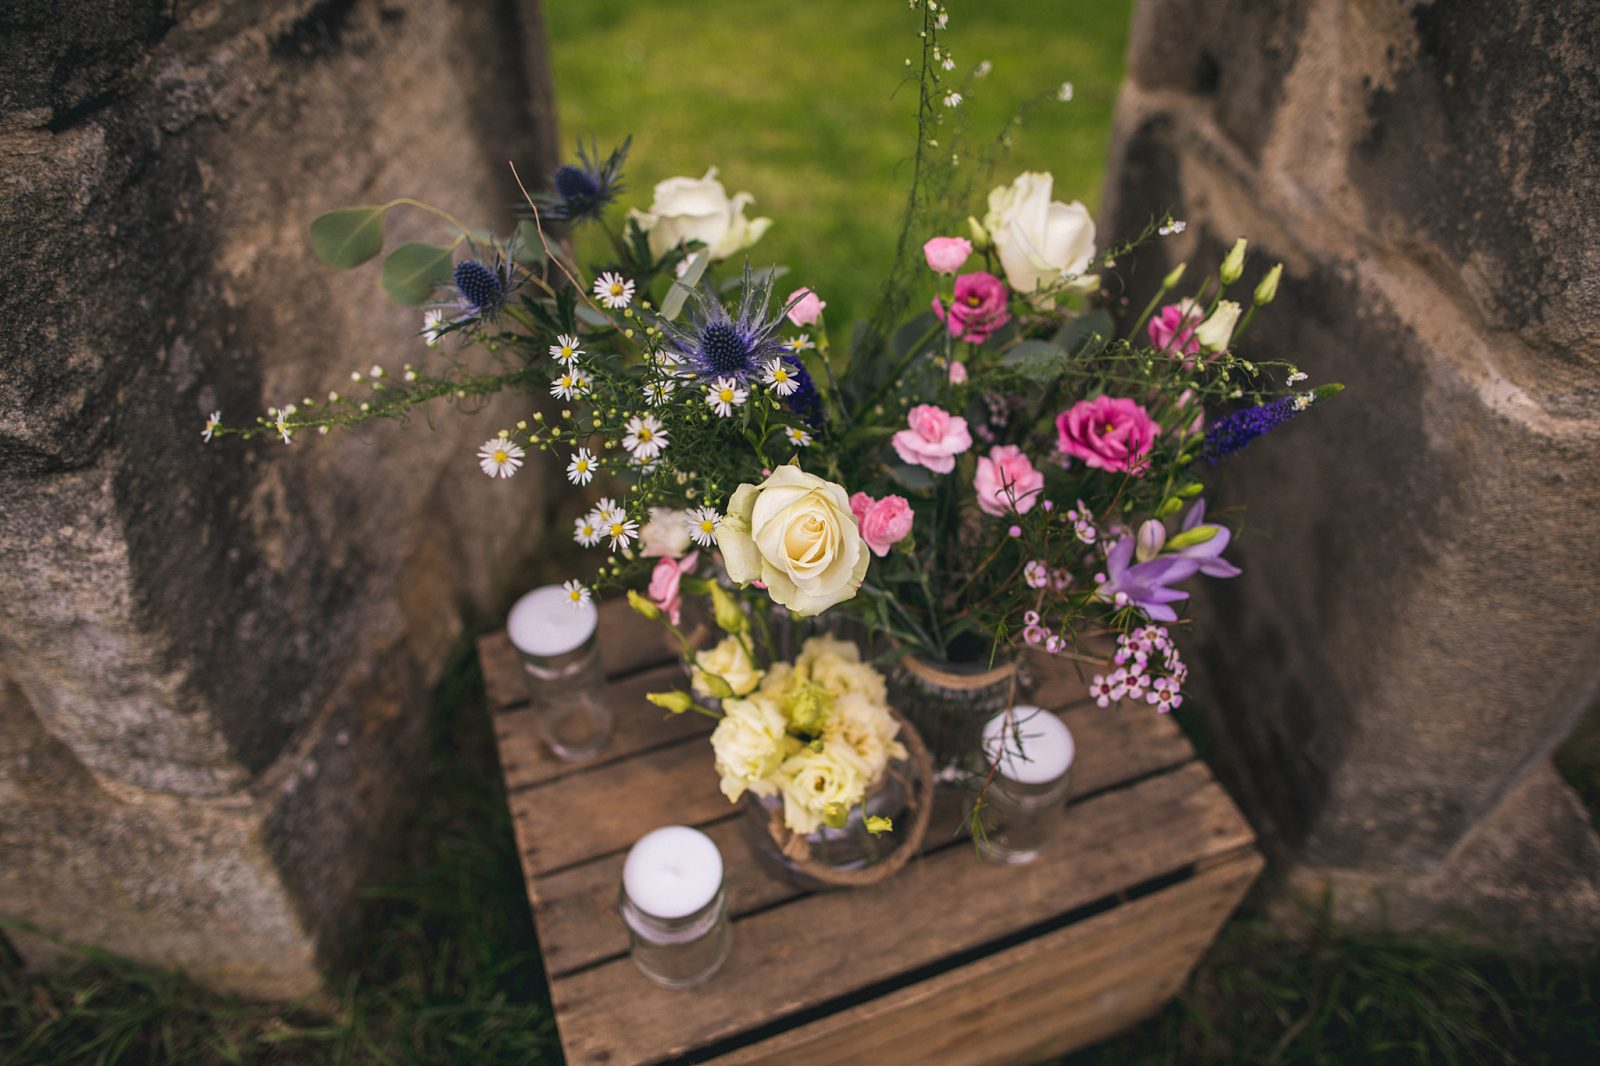 wedding reception ideas Roses thistles fresias gypsophila jam jars candles crate outdoor wedding